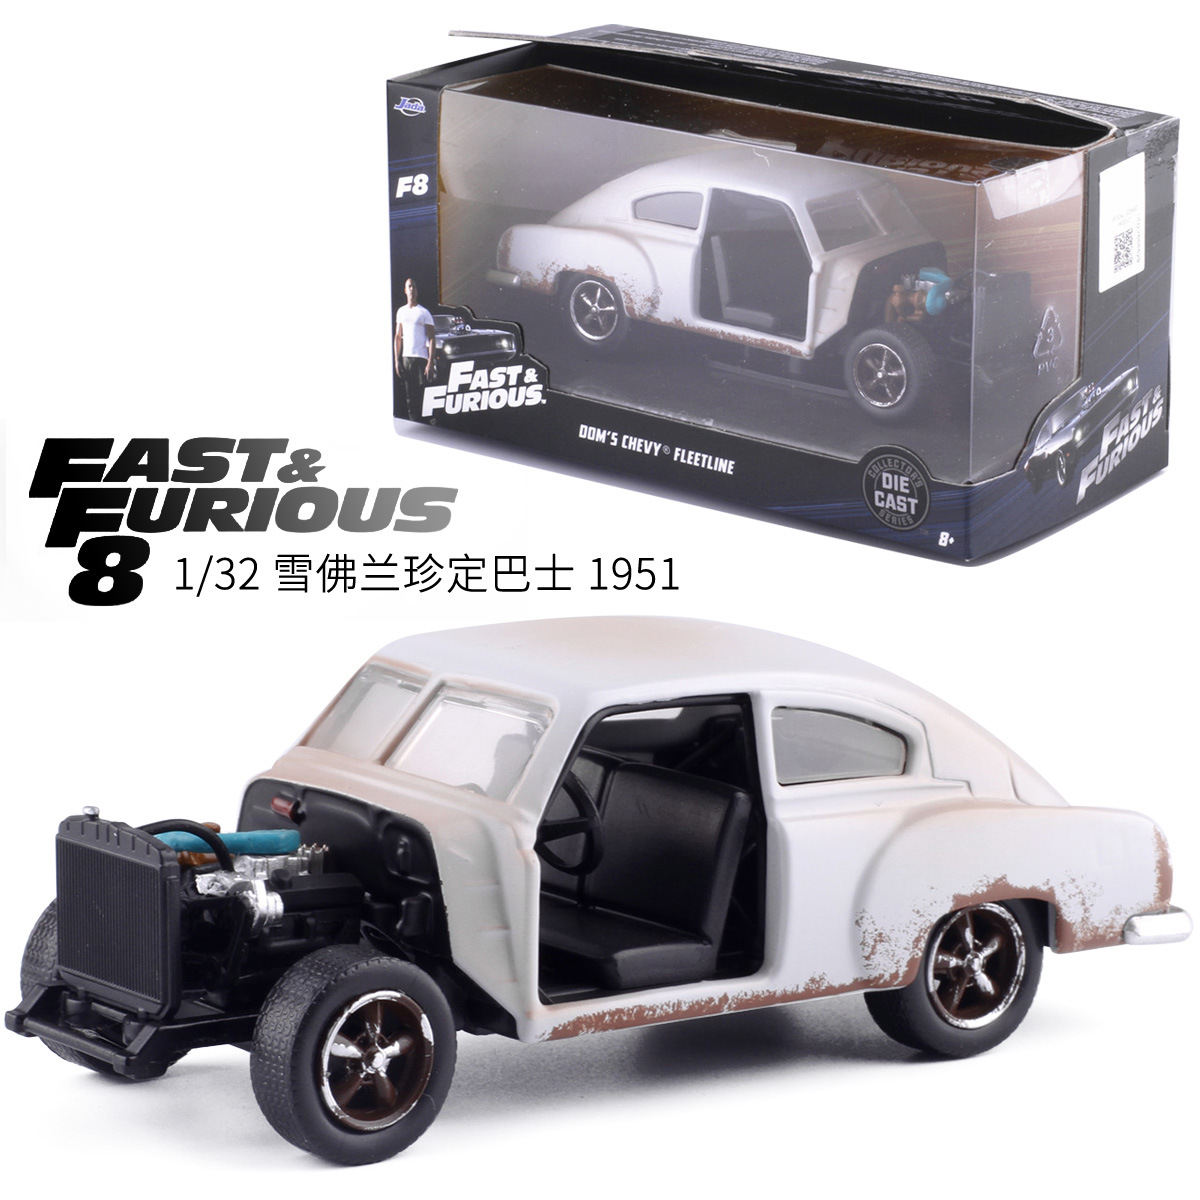 1 32 jada fast furious alloy car chevy fleetline 1951 bus metal diecasts classical model toy collection toys for children gift in diecasts toy vehicles  [ 1200 x 1200 Pixel ]